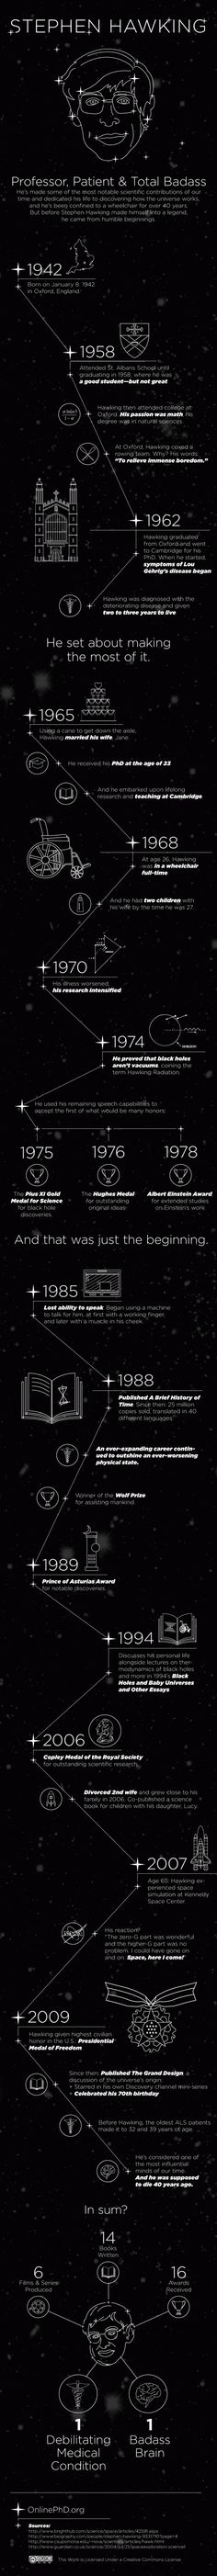 [Infographic] Stephen Hawking is the man!